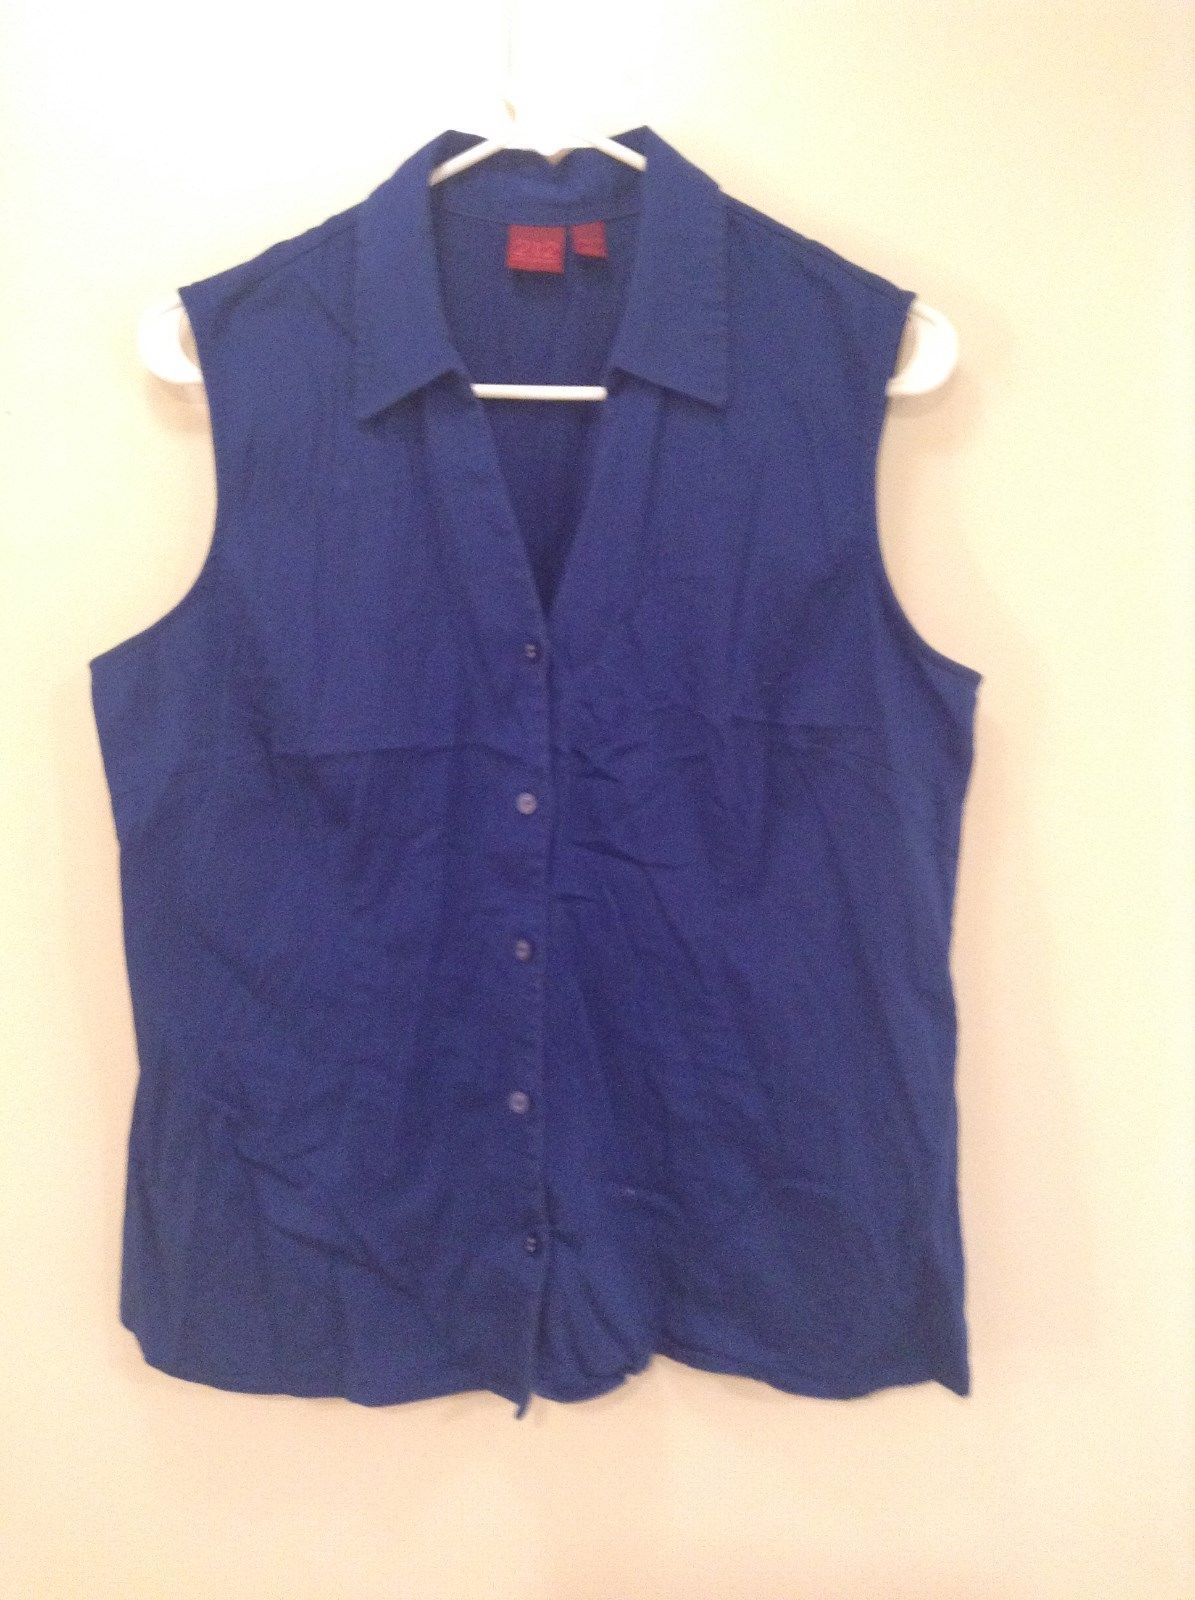 Blue Sleeveless Button Up V Neck Collared Shirt Stretch 212 Brand Size Large